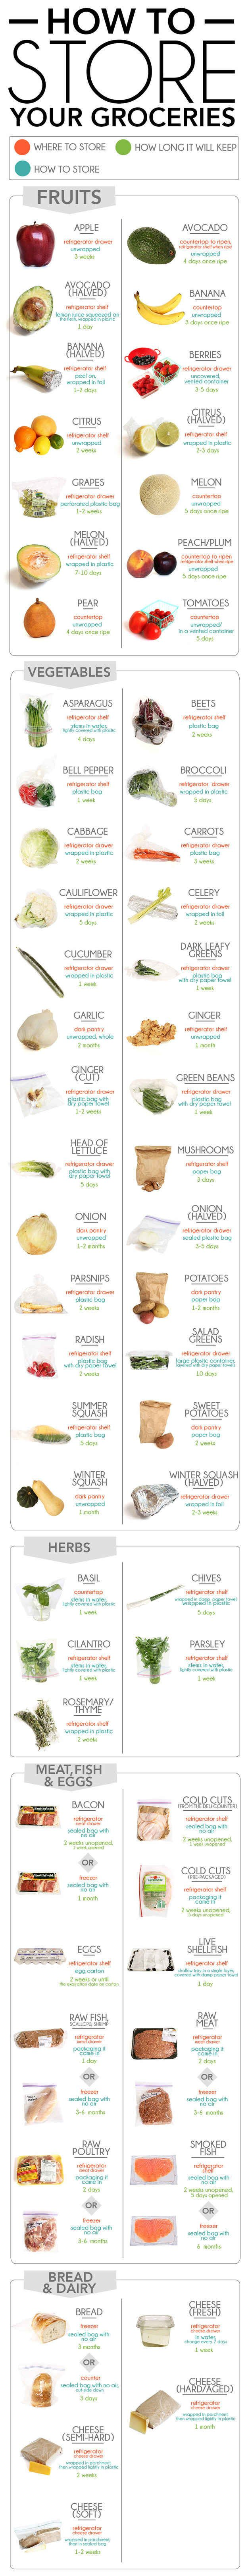 How To Store Your Groceries ~ *use the info on haram meats for our halal breakfast beef strips and halal deli meats :)